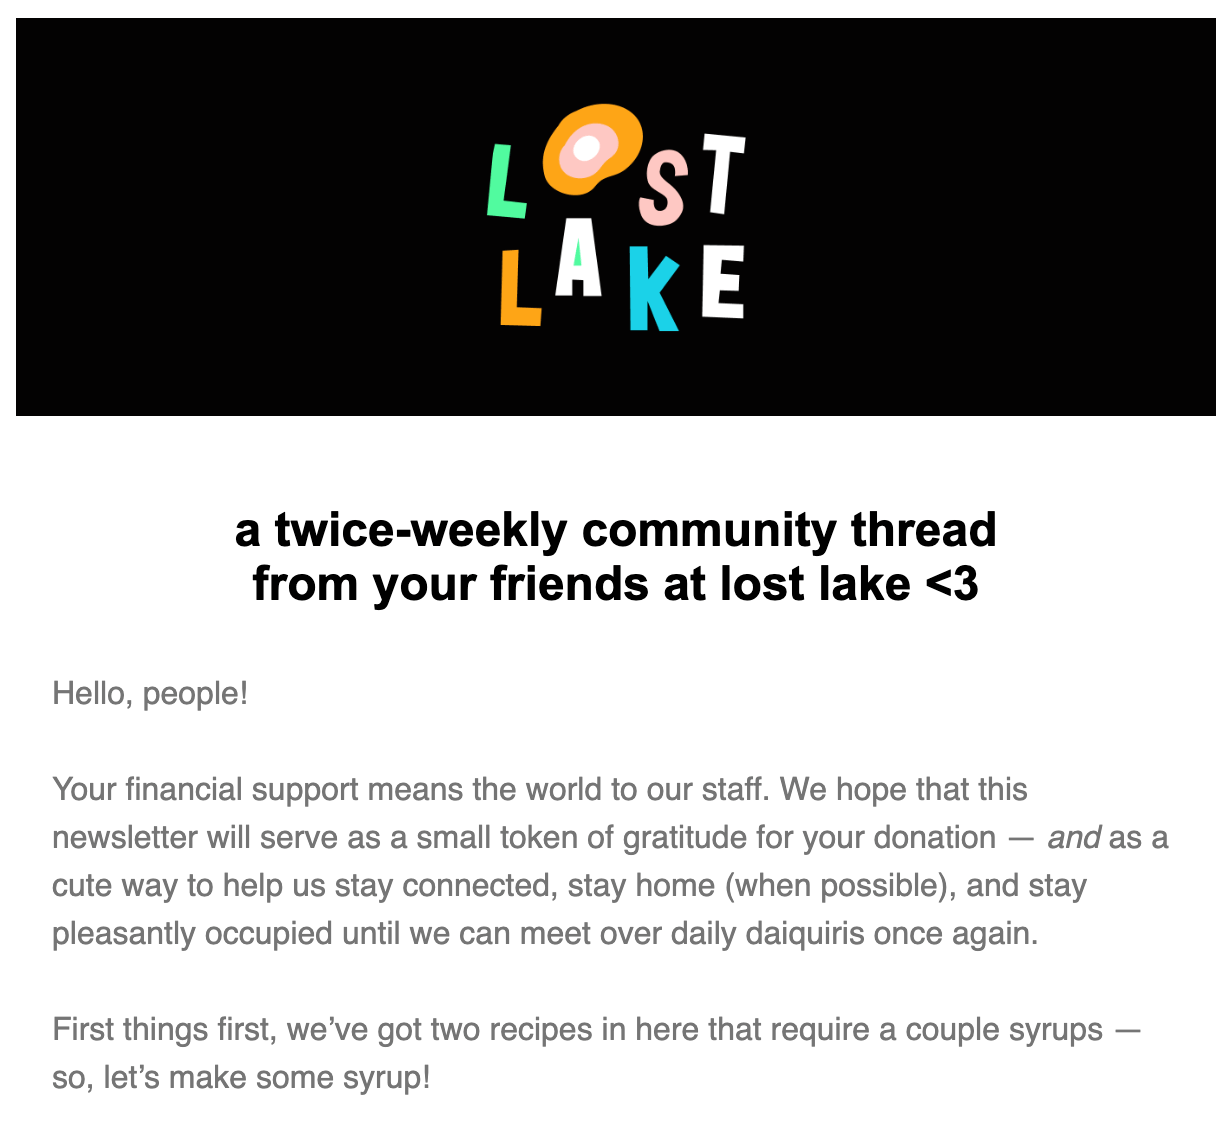 Lost Lake newsletter